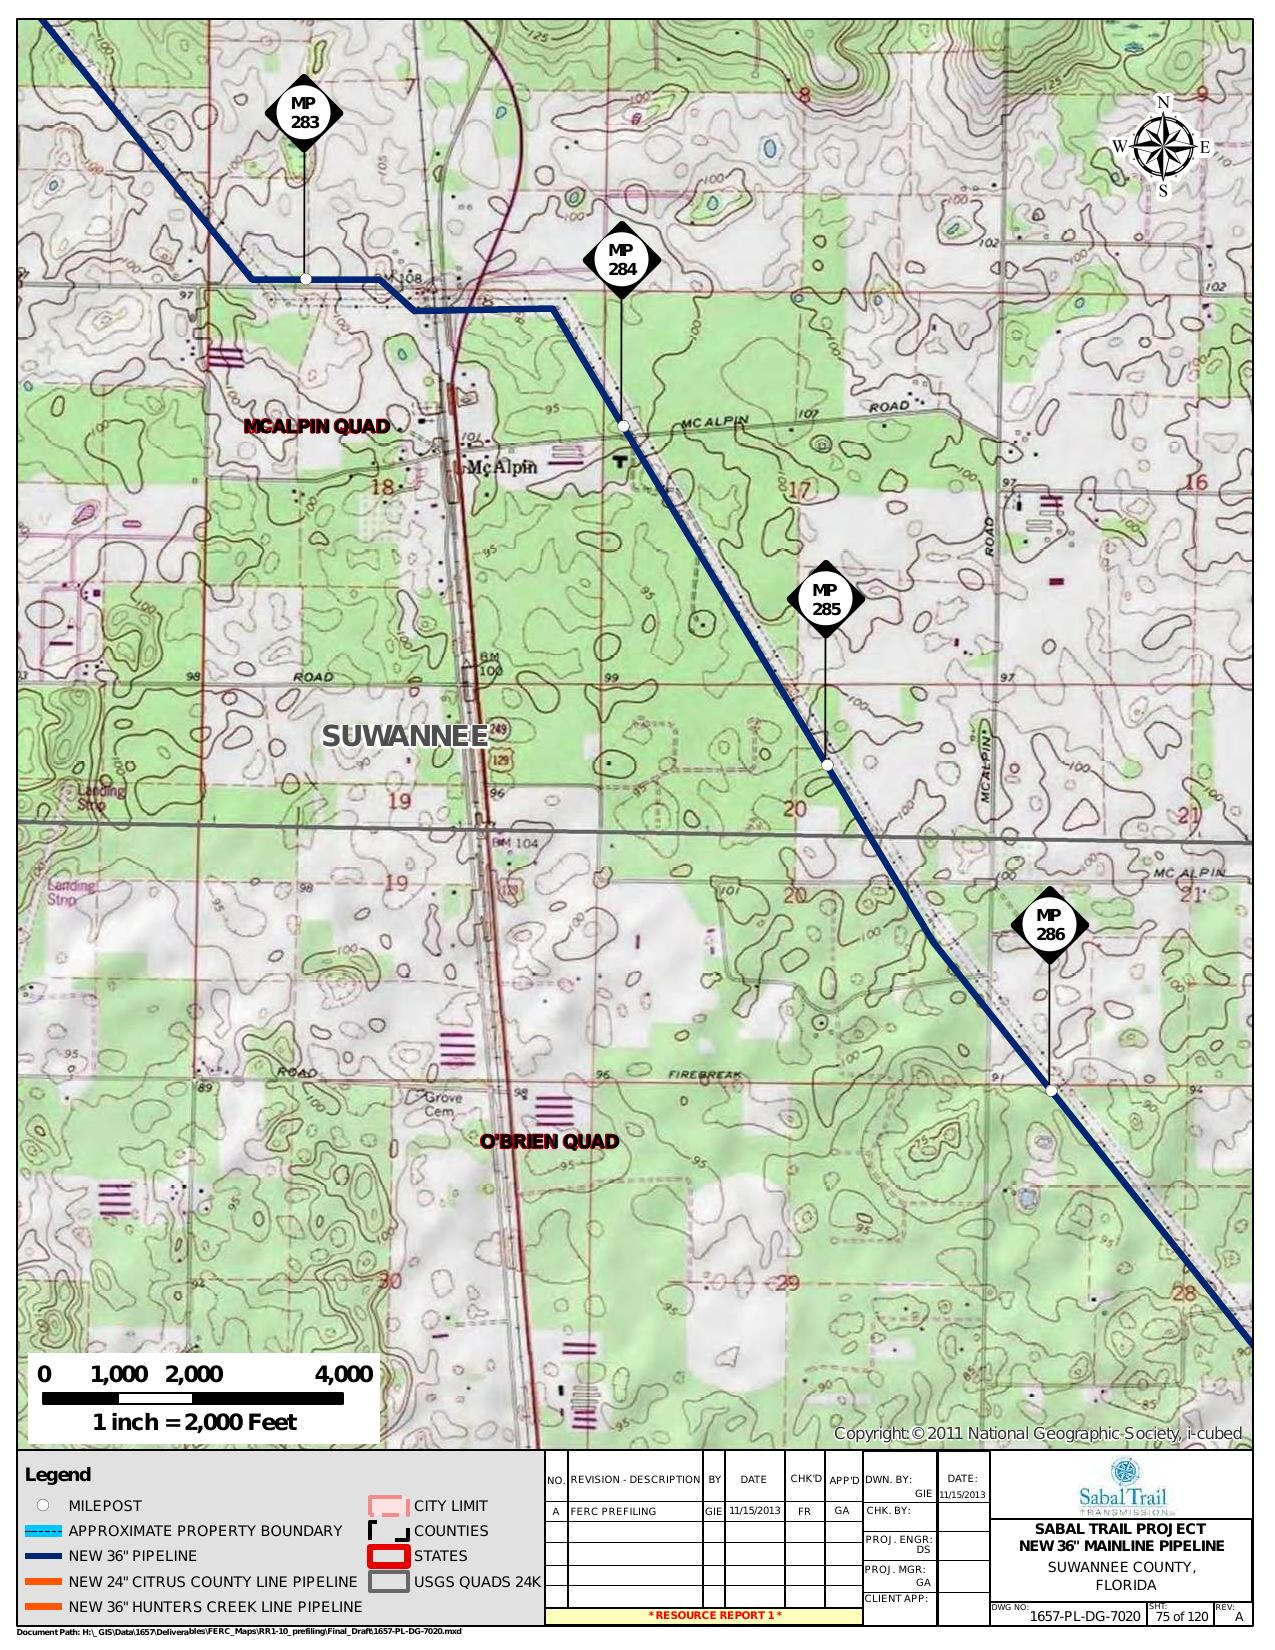 McAlpin, Suwannee County, Florida, in General Project Description, by SpectraBusters, for FERC Docket No. PF14-1-000, 15 November 2013, converted by SpectraBusters